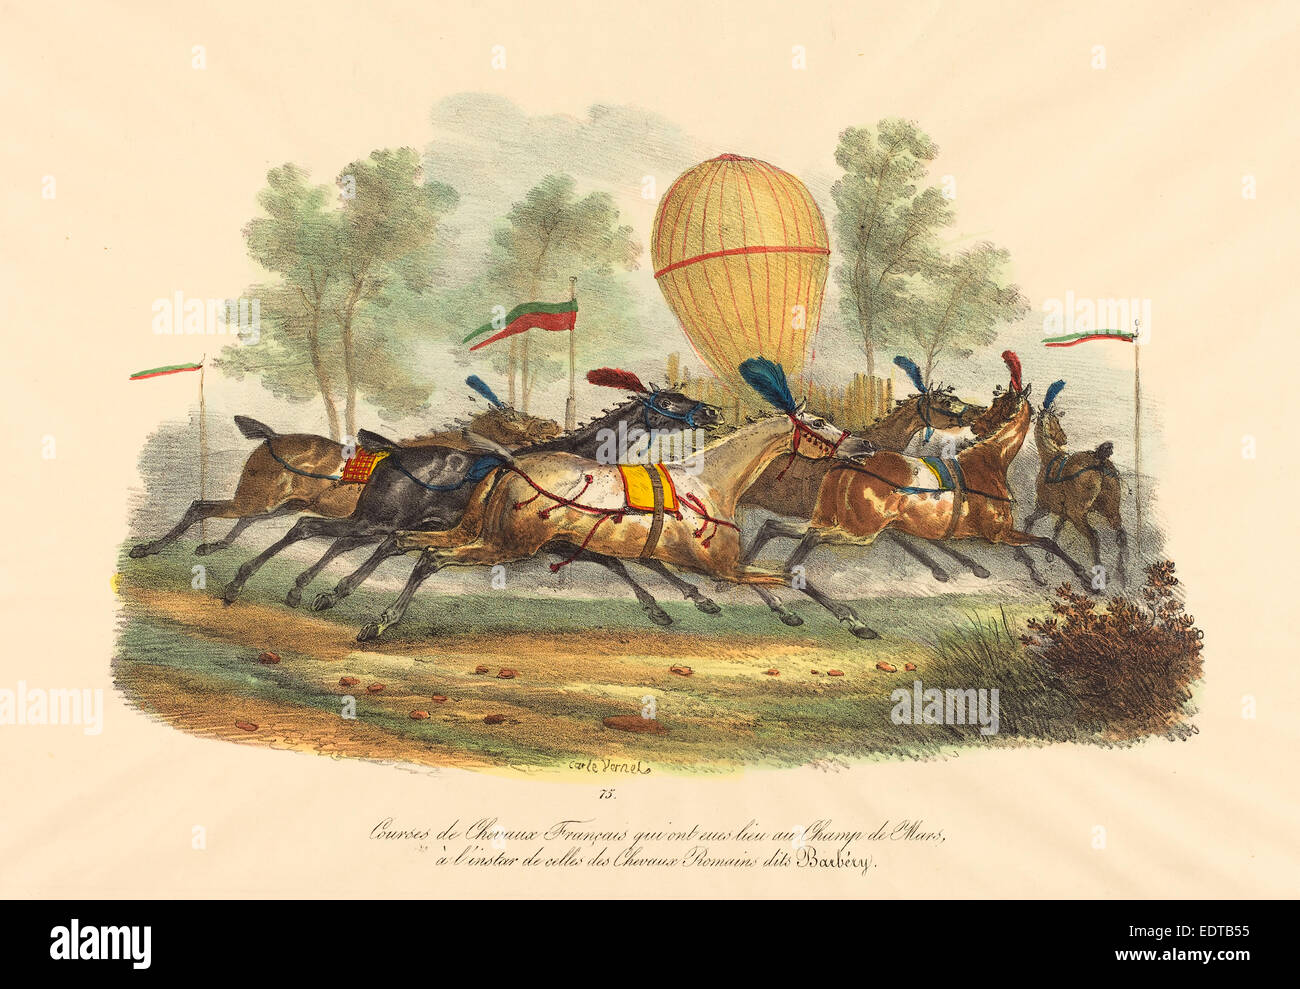 Carle Vernet (French, 1758 - 1836), French Race Horses, hand-colored lithograph - Stock Image